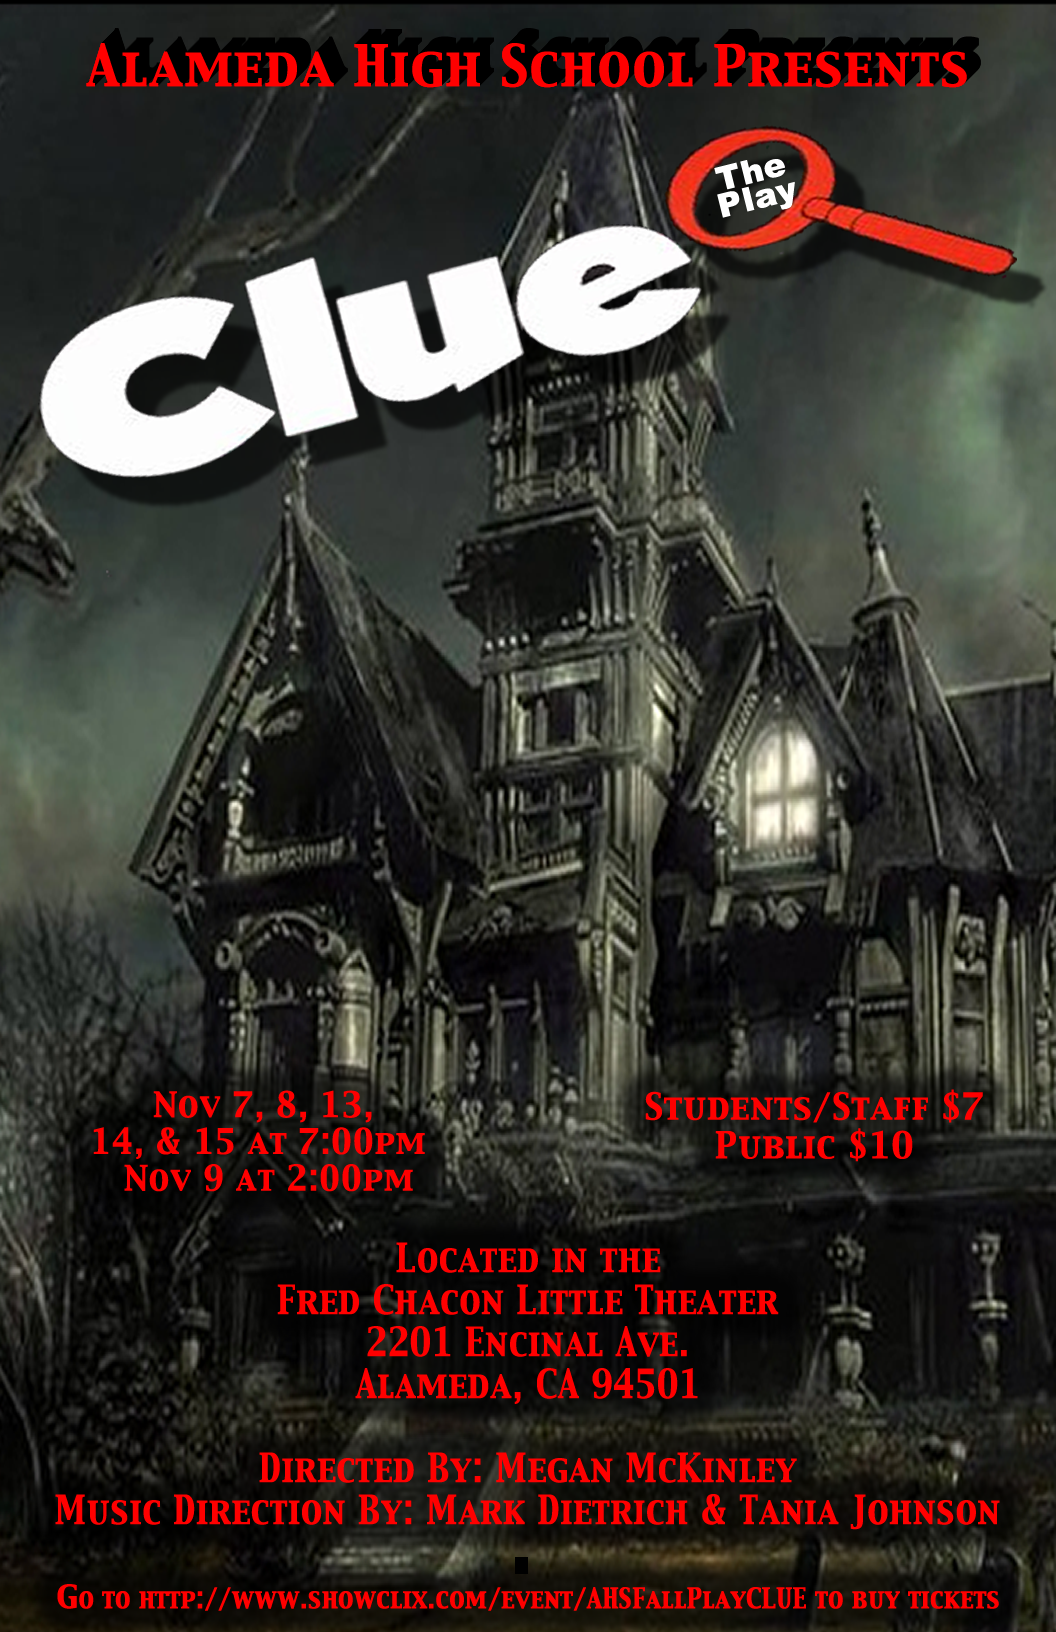 FALL PLAY PROMOTIONAL POSTER!!!